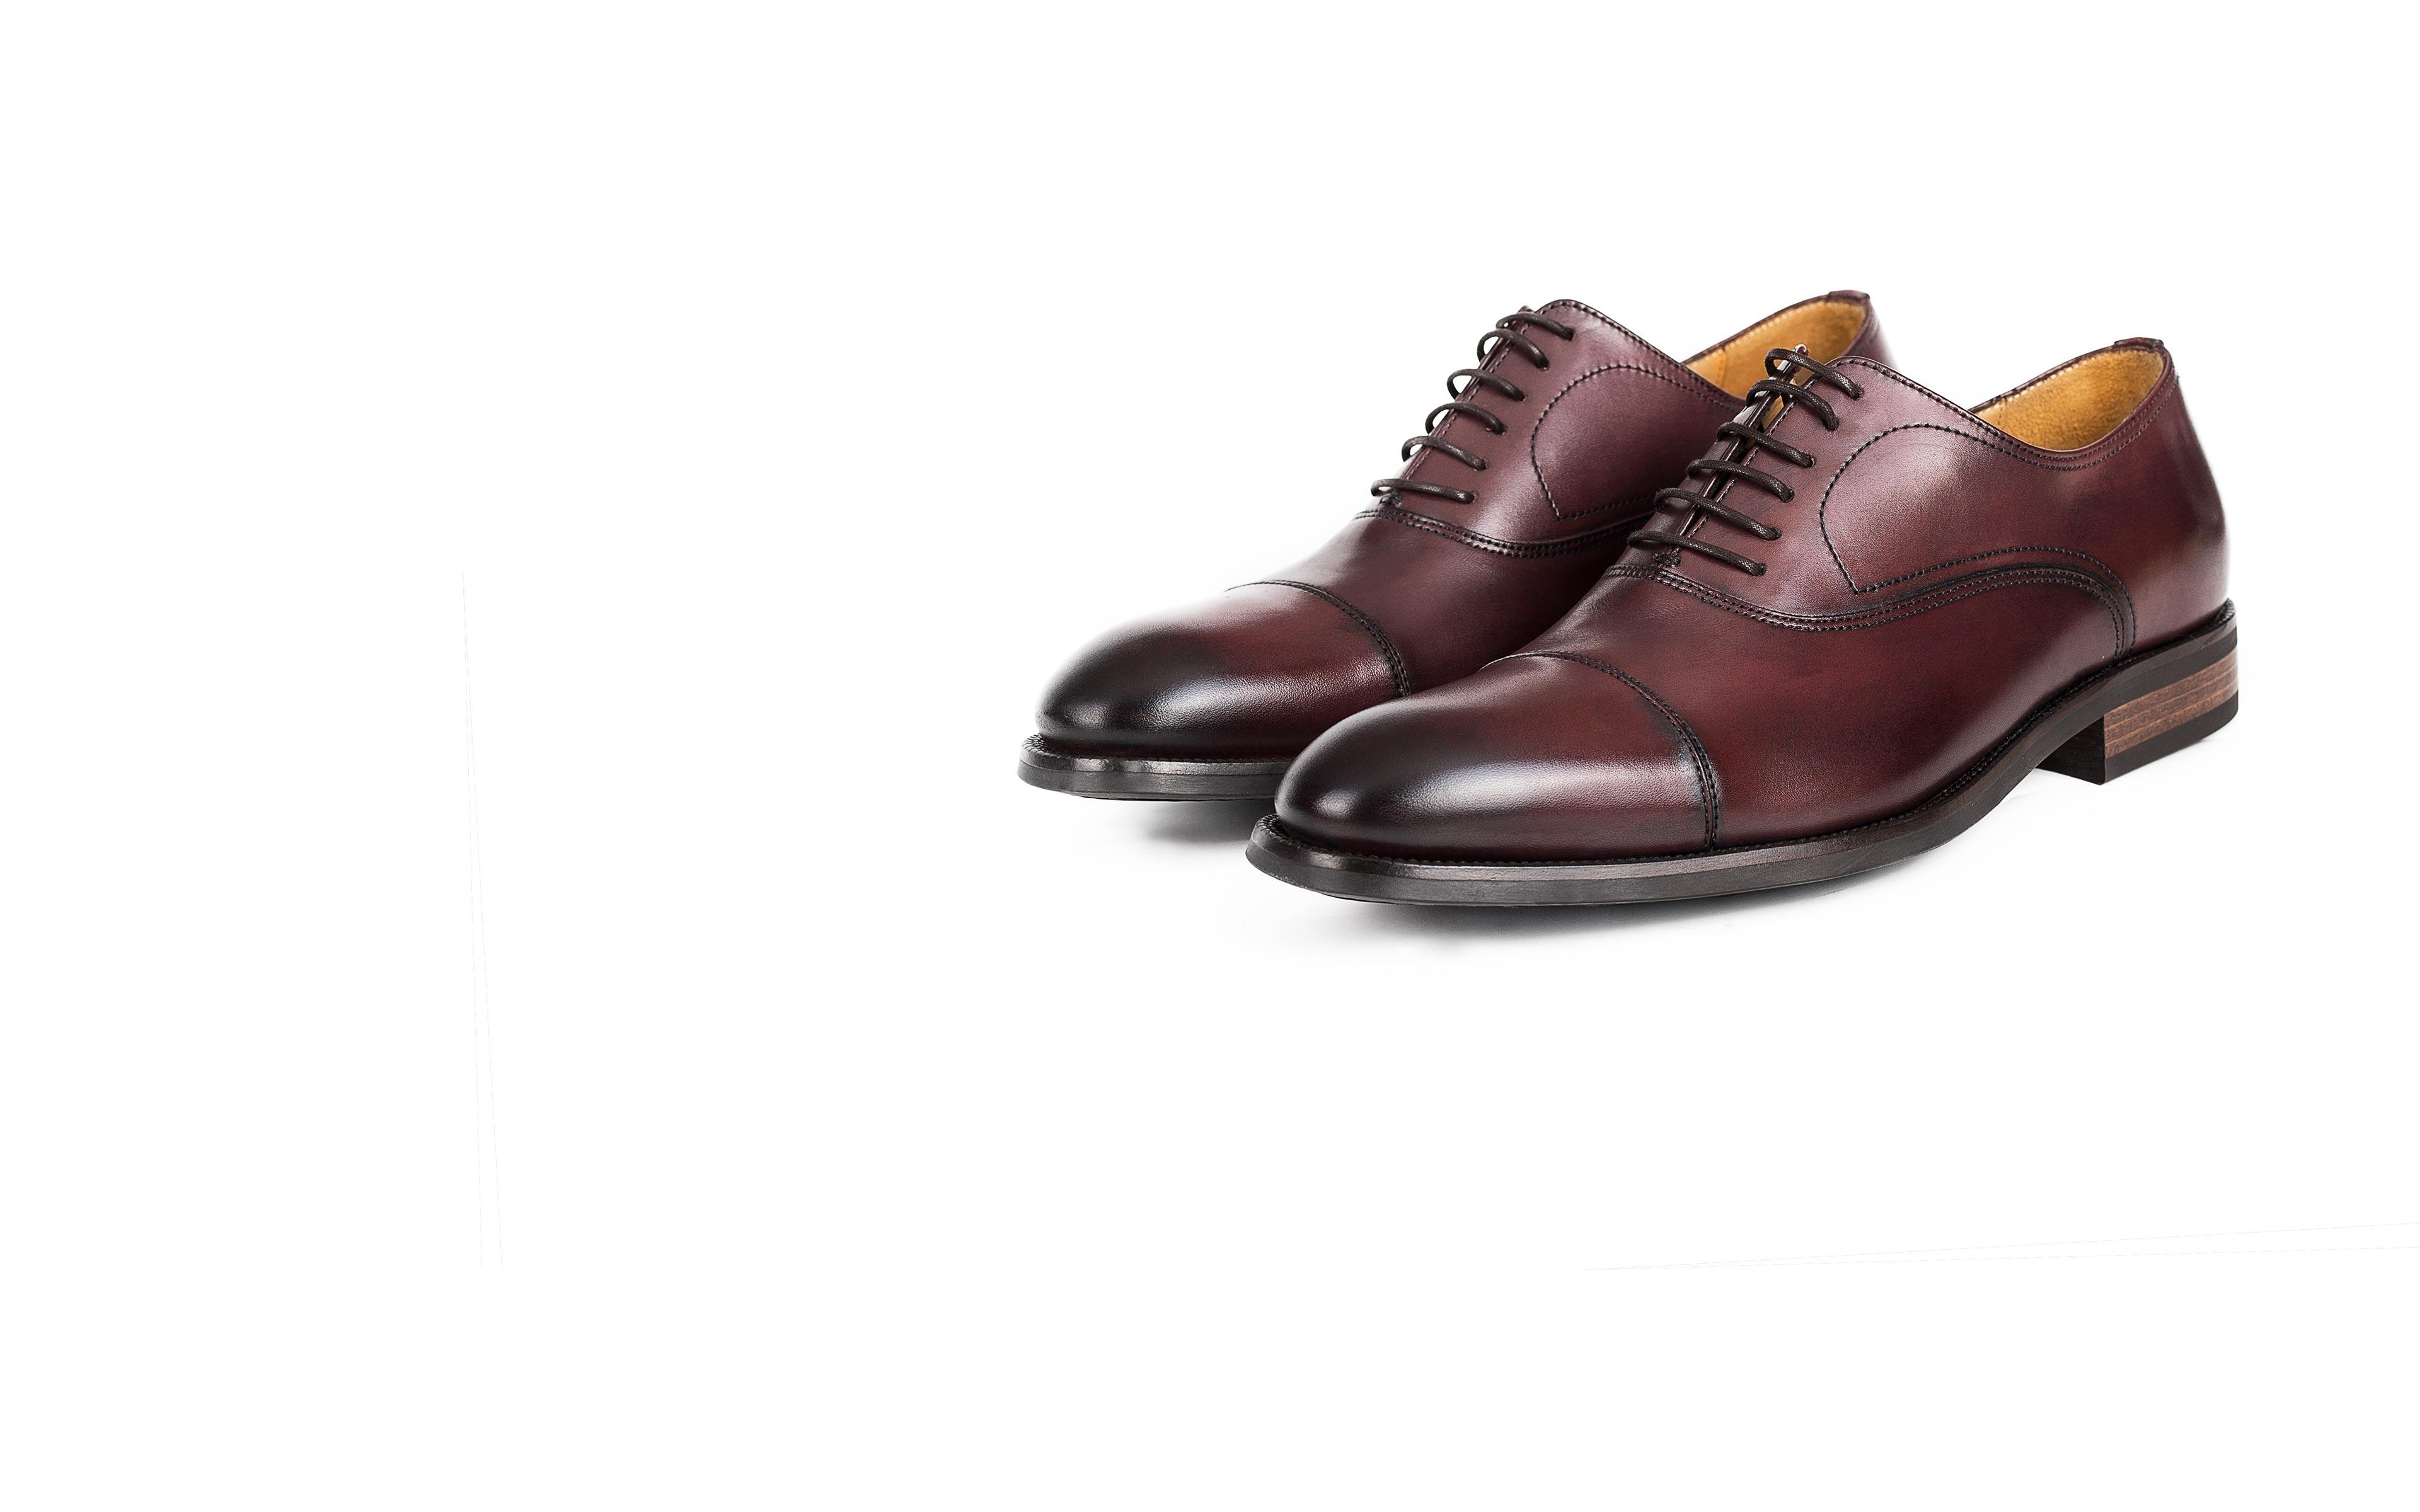 Burgundy Cap-Toe Oxford with a Rubber Sole